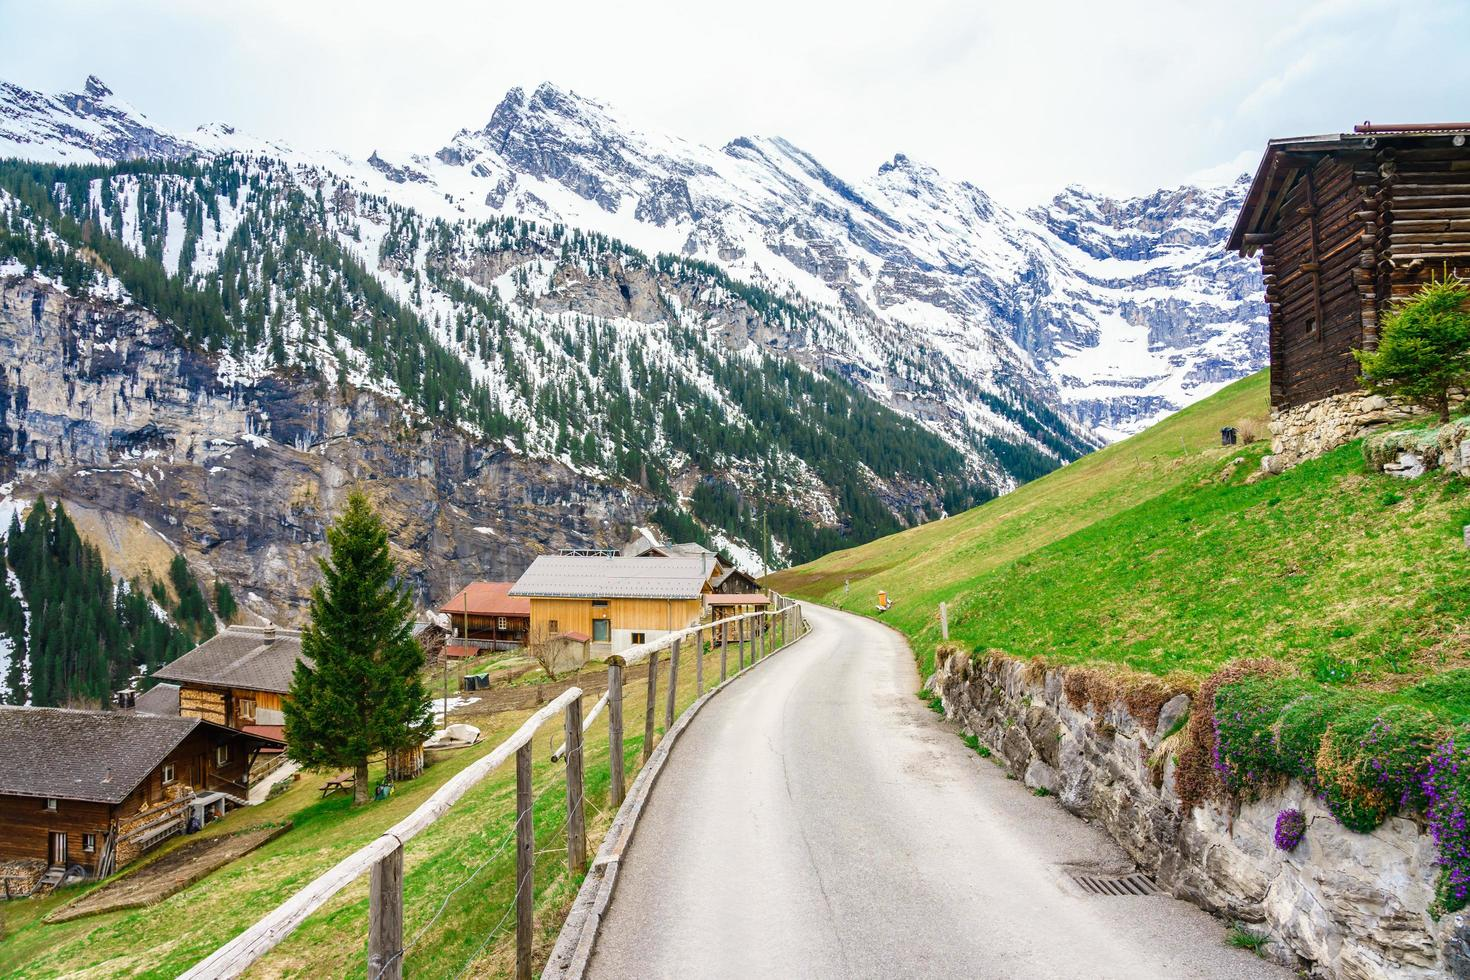 The Alps at Gimmelwald and Murren in Switzerland photo